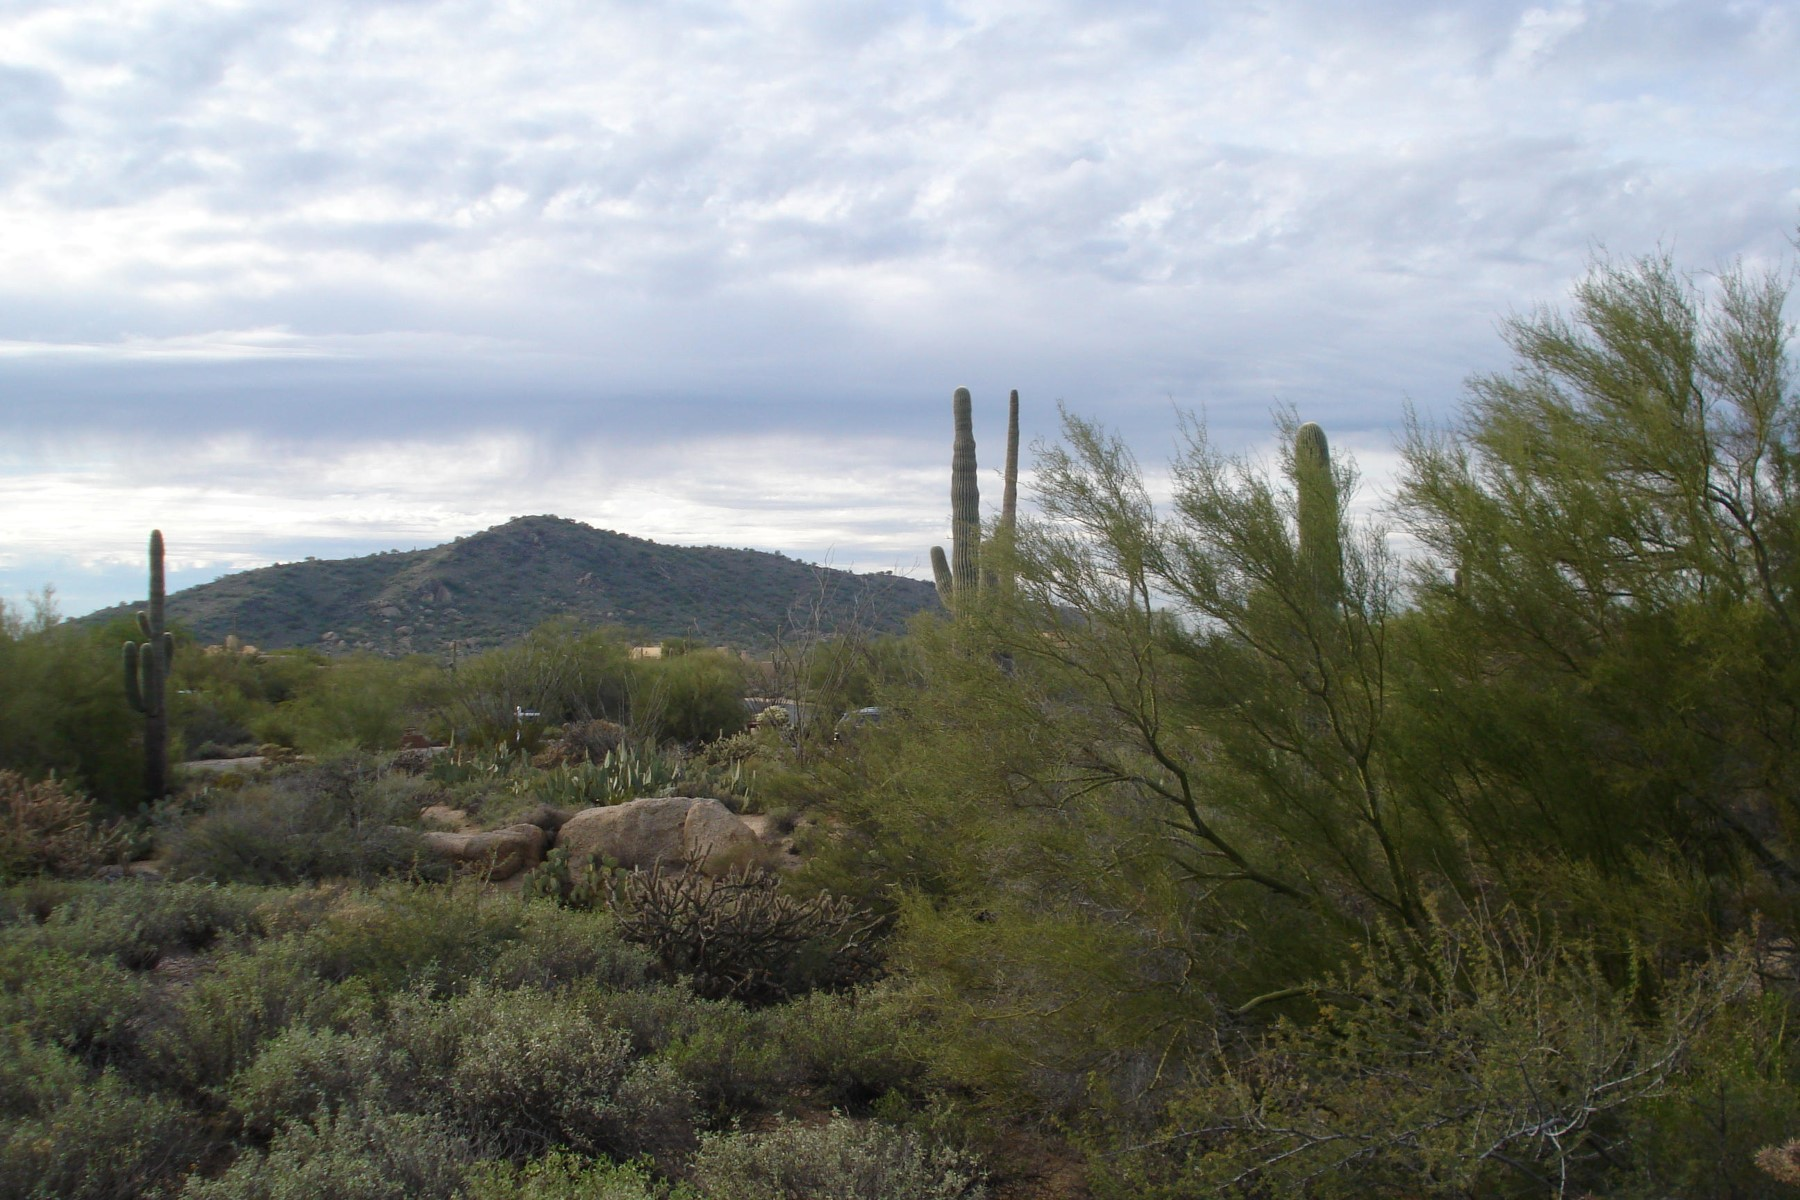 Land for Sale at Lone Mountain Views and sunsets all year round 30600 N Pima RD 26 Scottsdale, Arizona 85266 United States